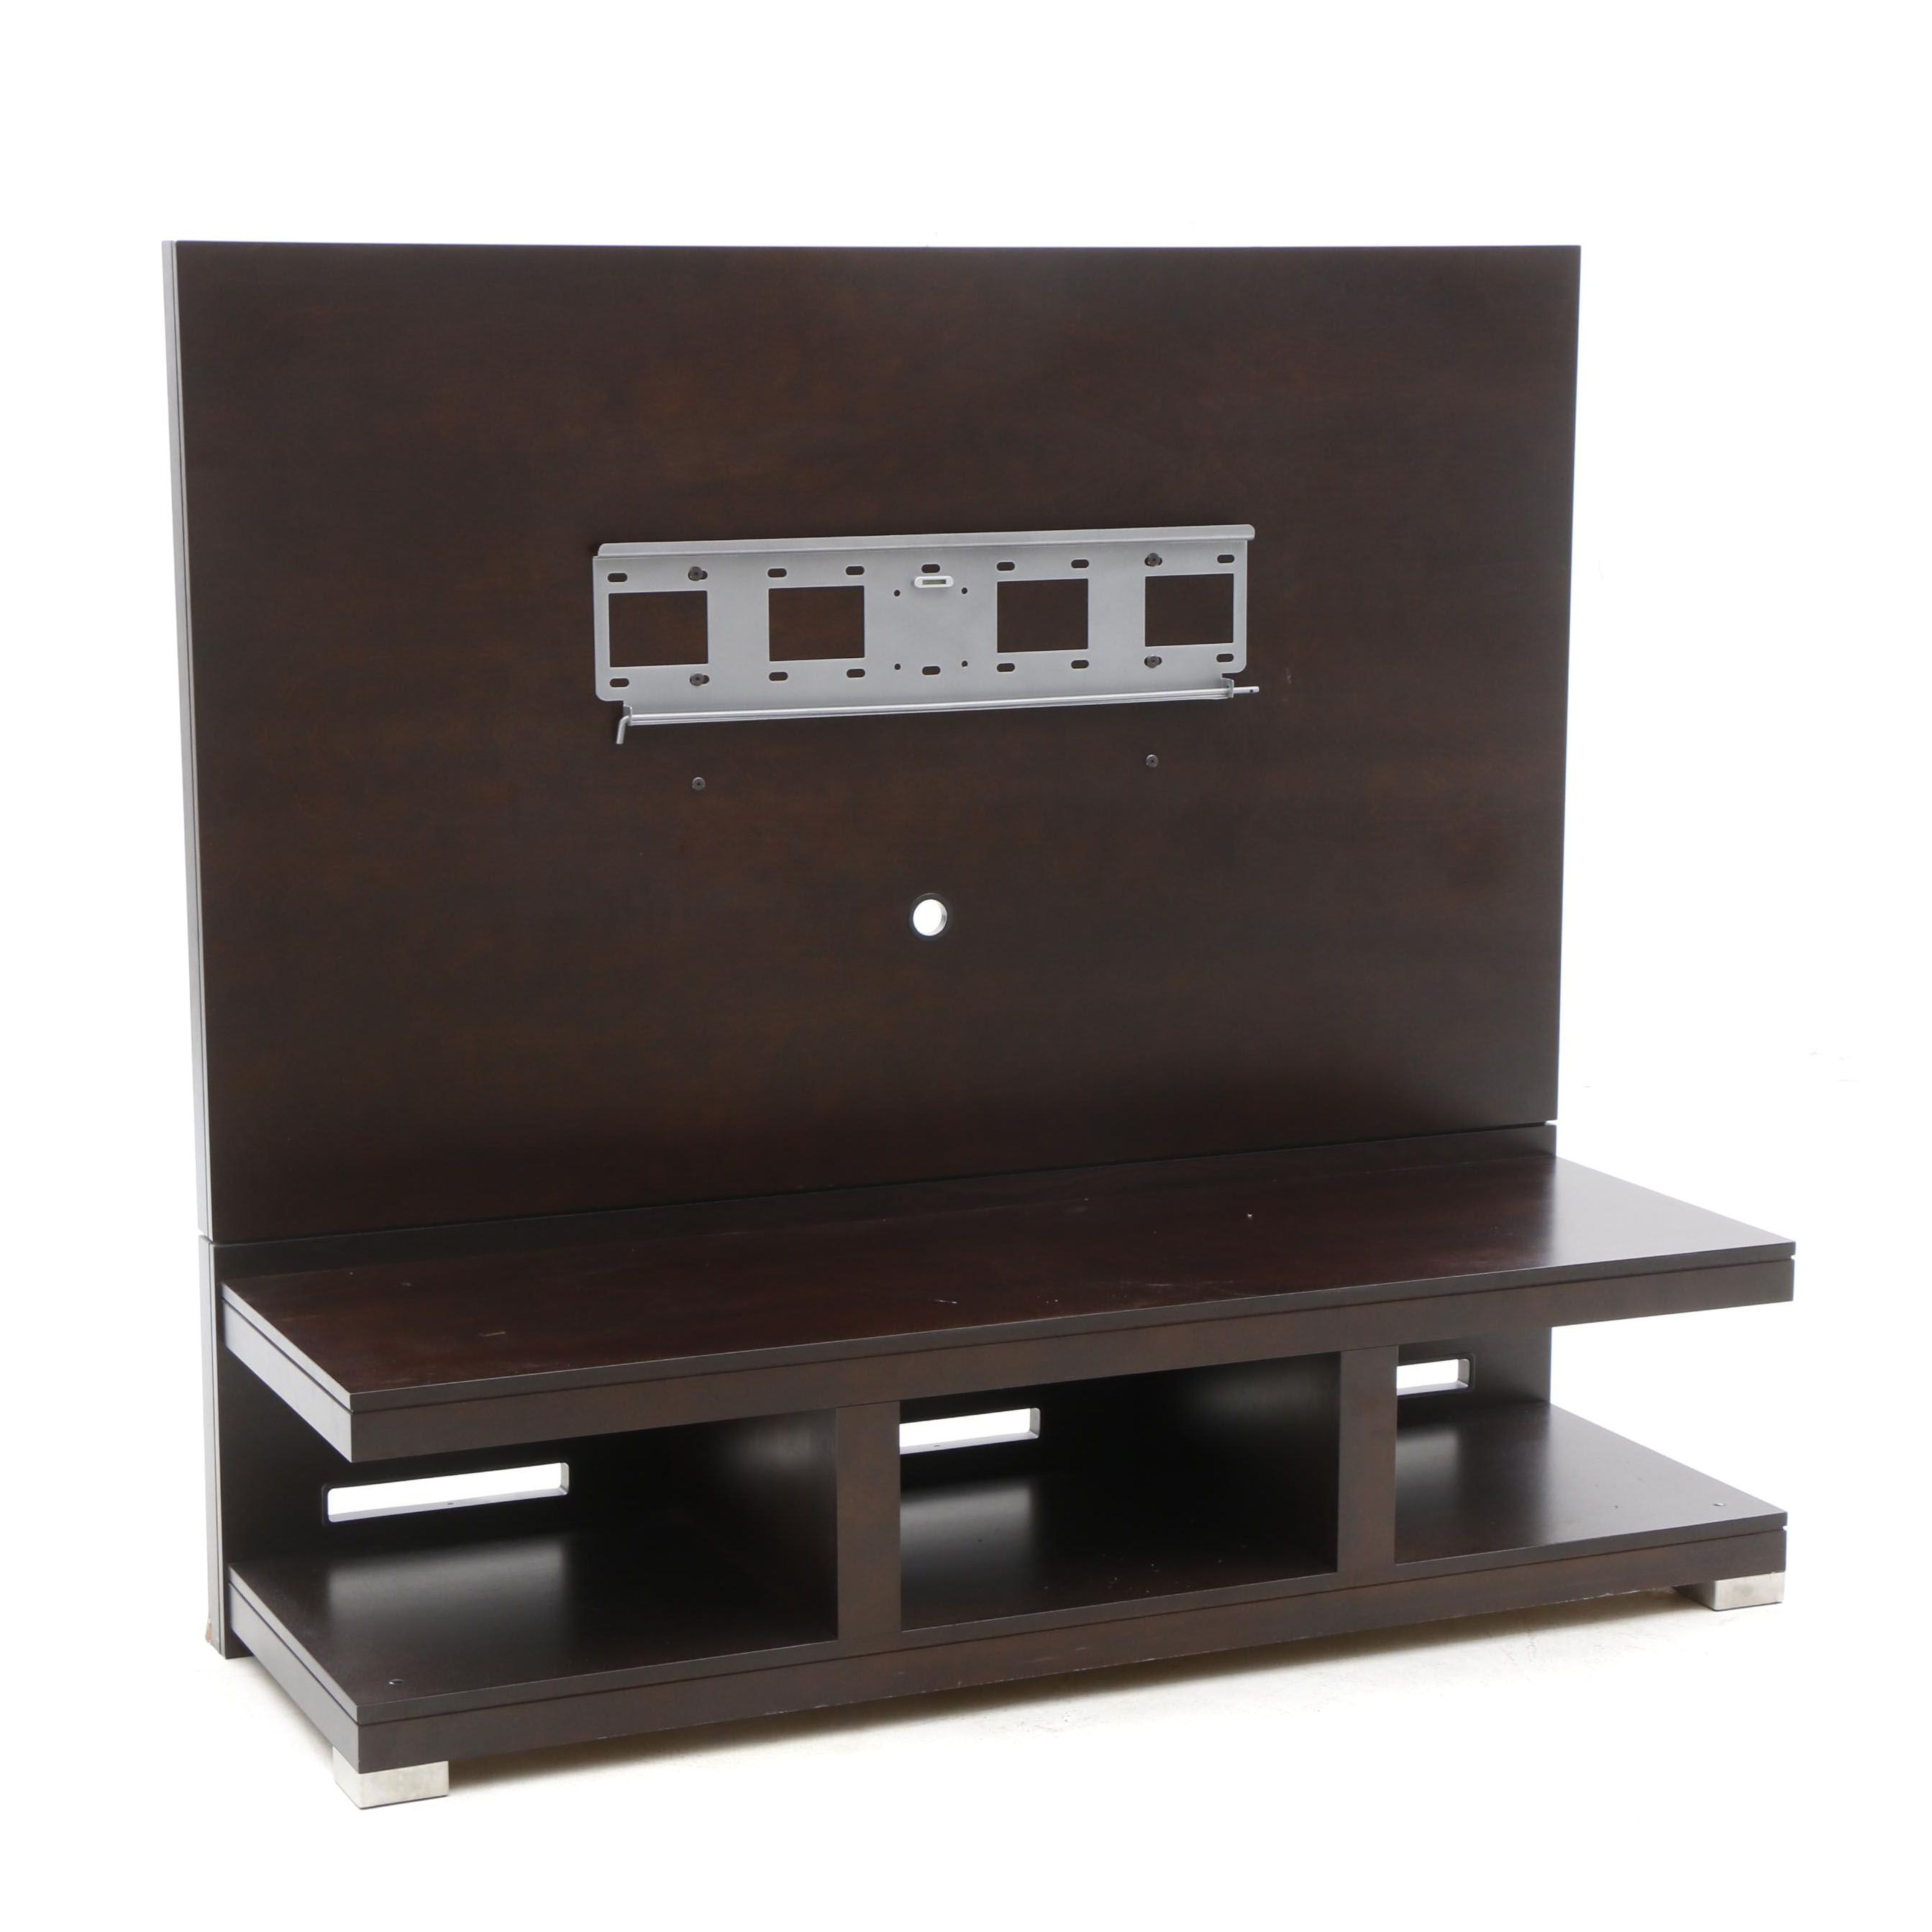 JSP Entertainment Cabinet in Black